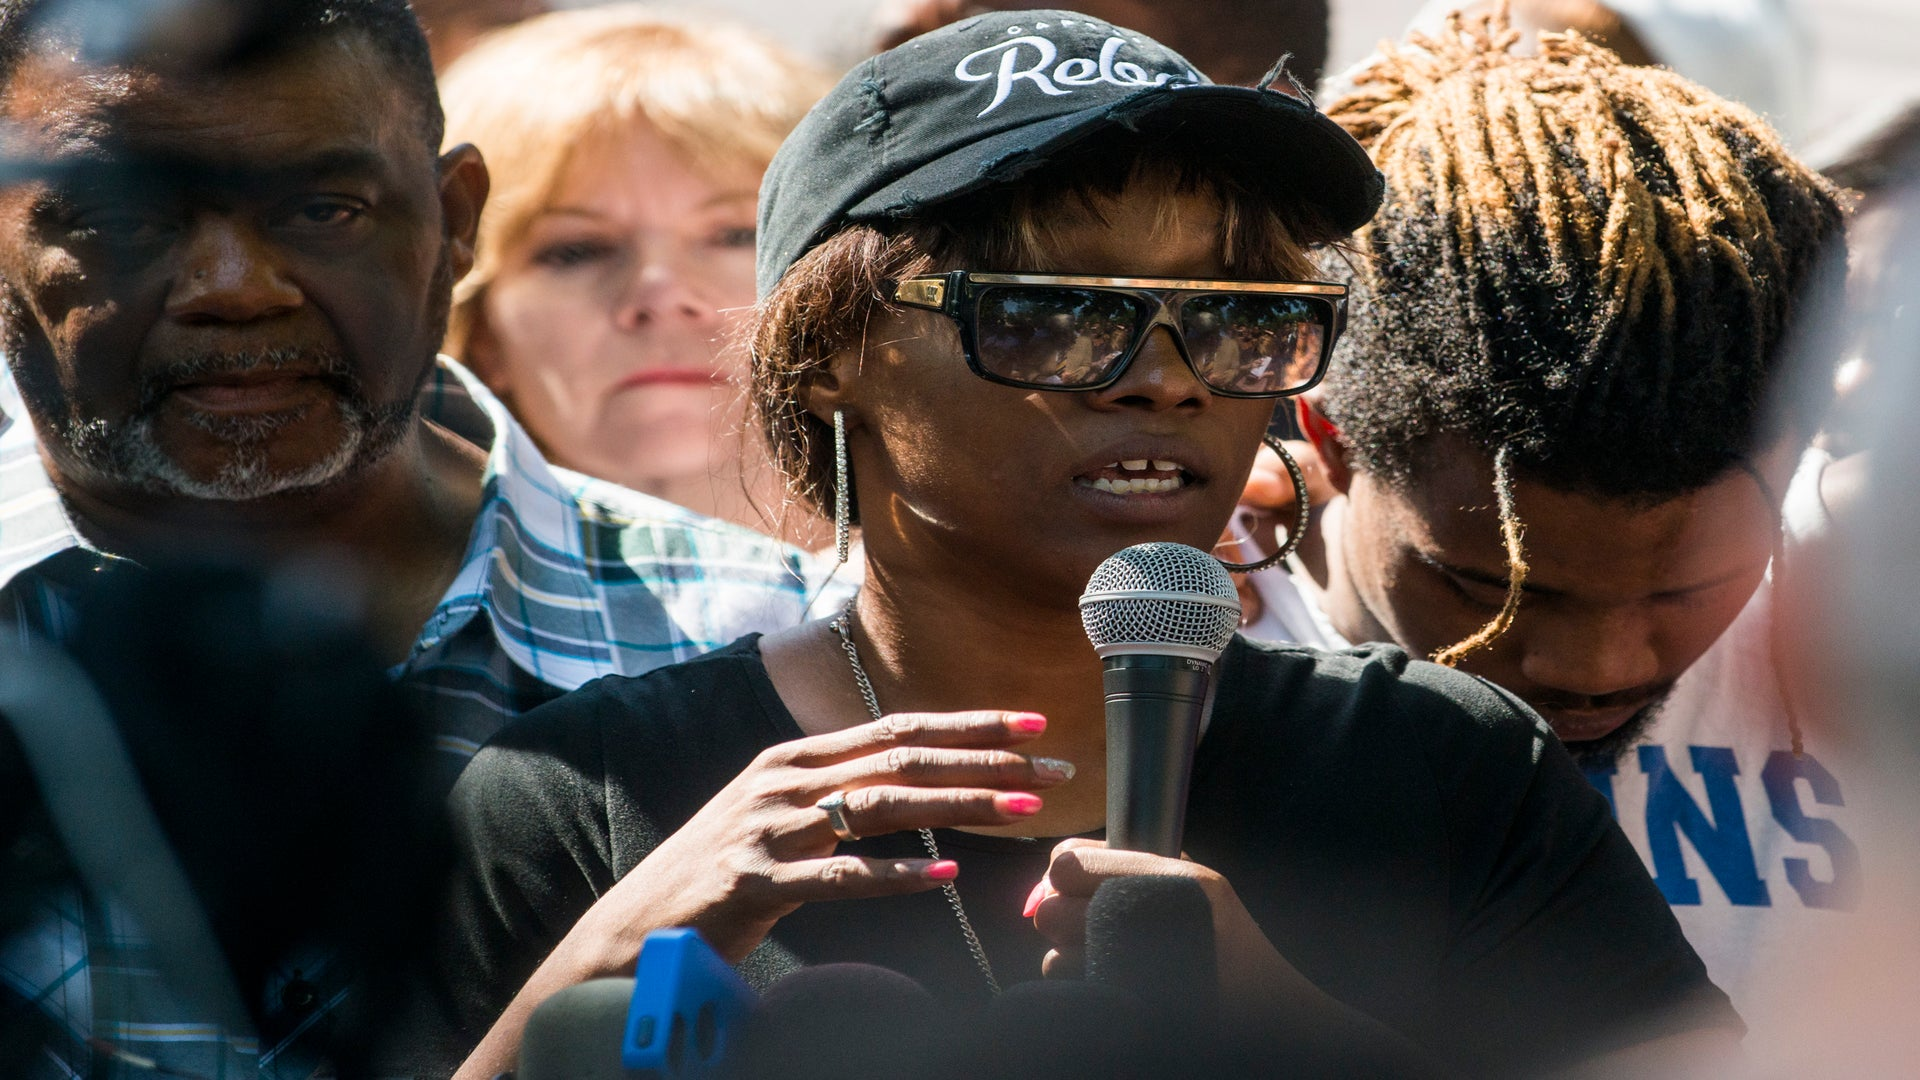 Fearing For Her Life, Philando Castile's Girlfriend Livestreamed Fatal Police Shooting